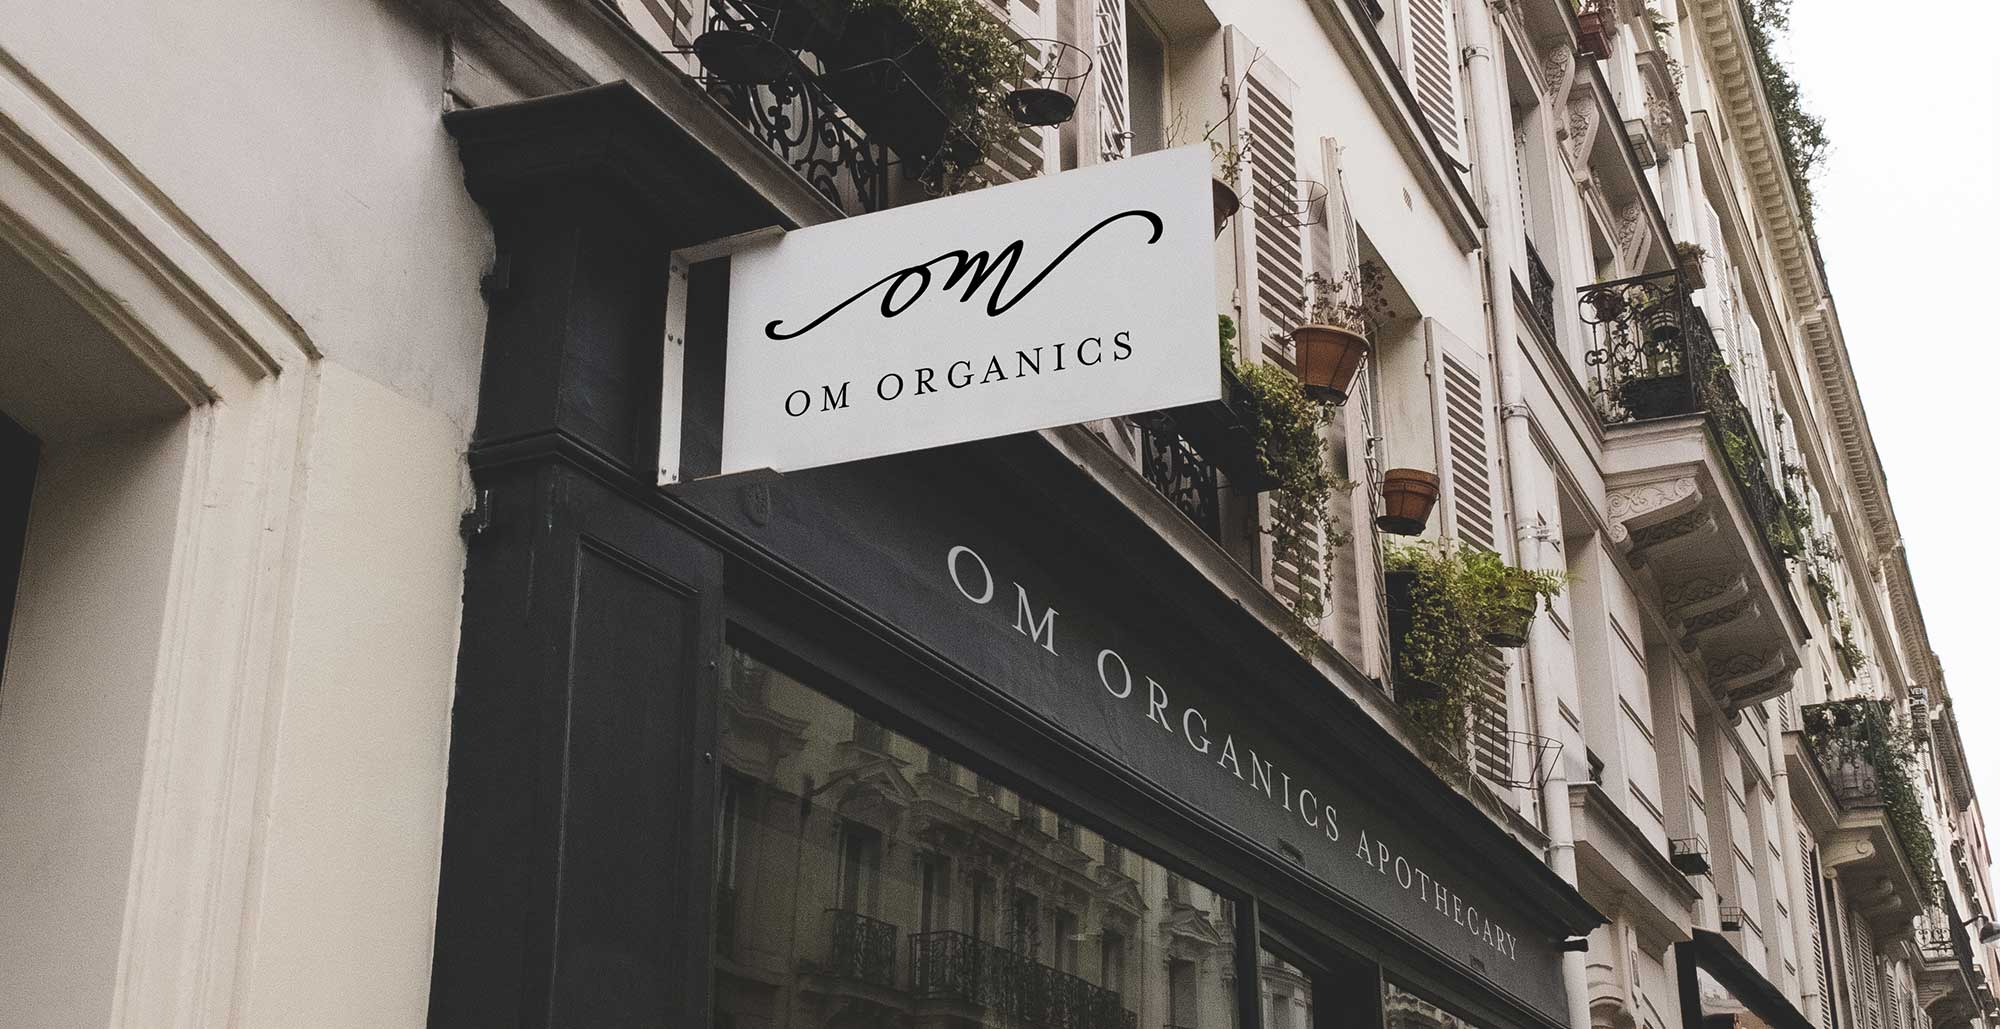 covetdesign_logo-design_branding_package-design_graphic-designer_vancouver_work_feature_omorganicsstorefront